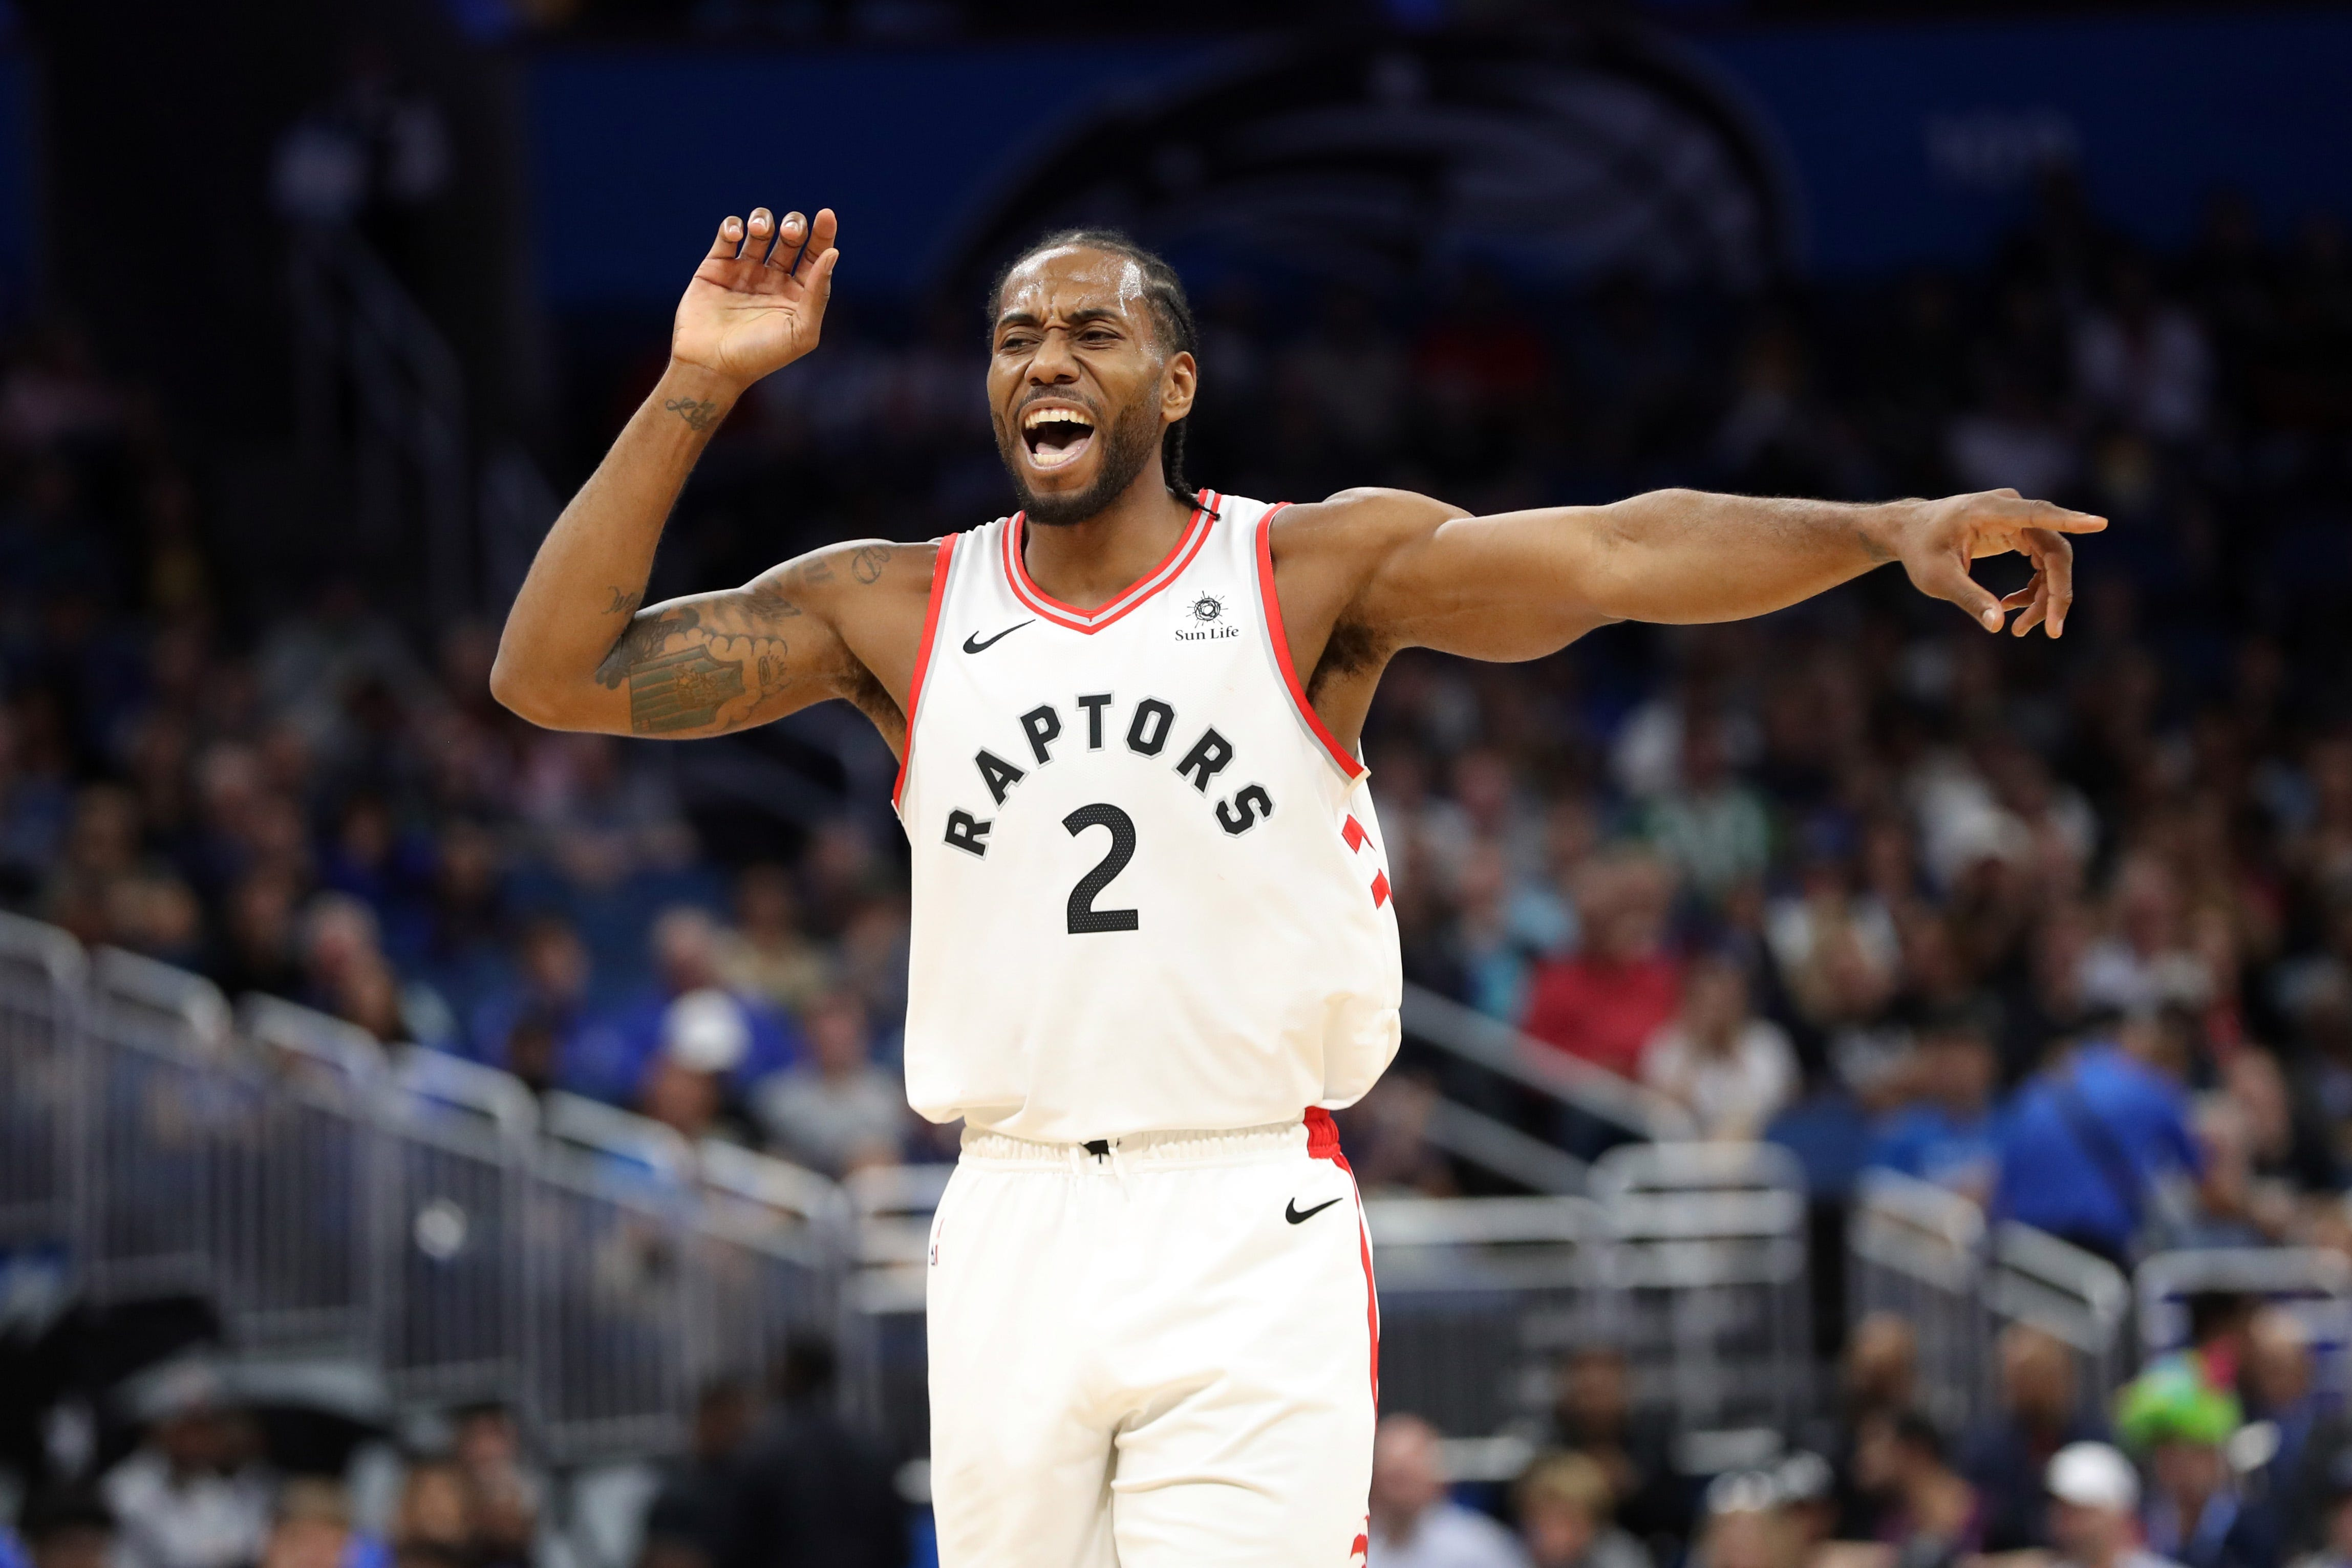 Kawhi Leonard gets the best of Gregg Popovich as Raptors soar | News